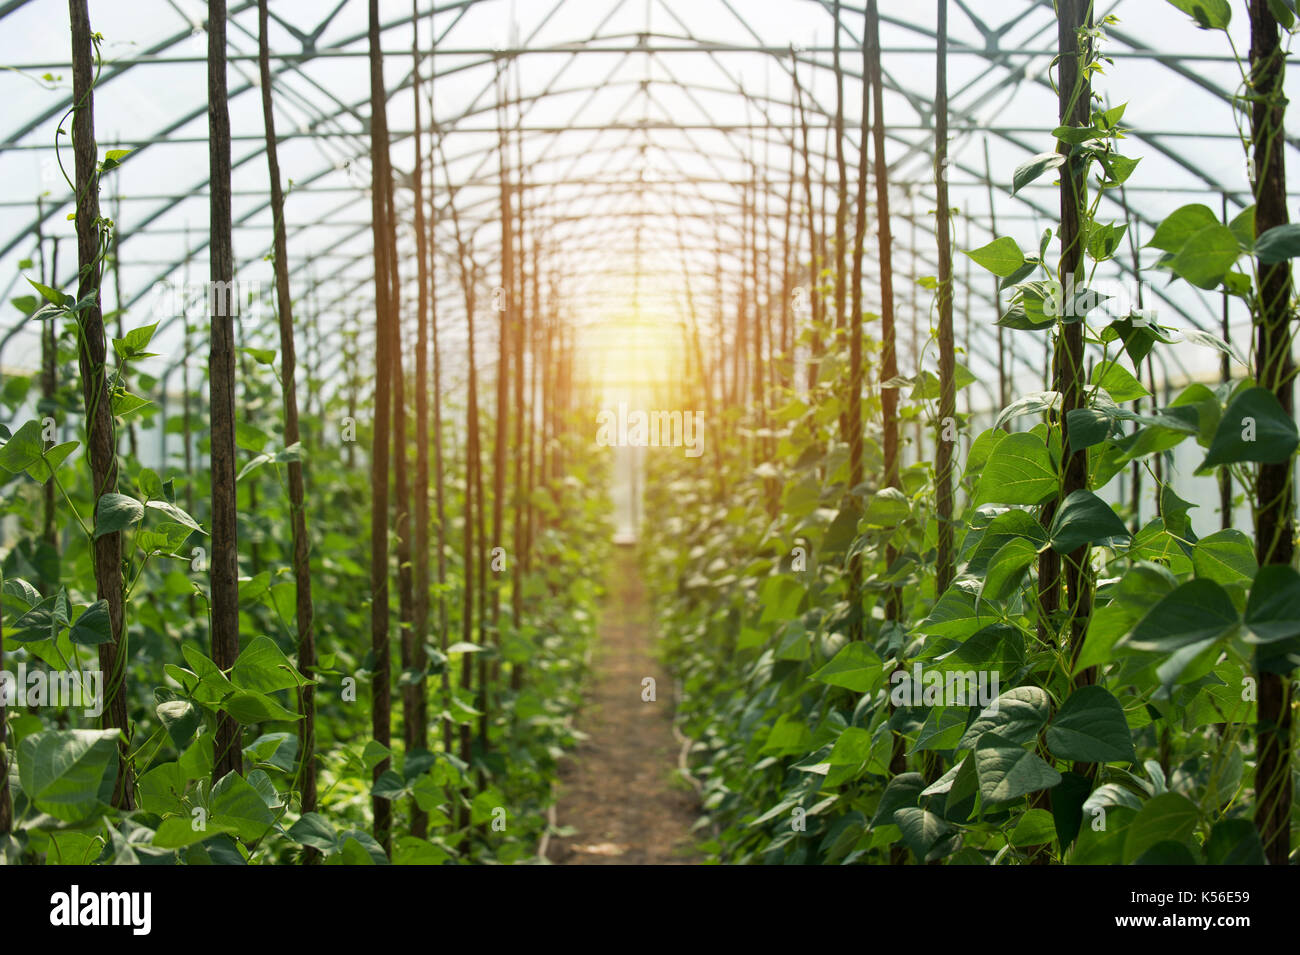 Rows of  bean palnts growing inside big industrial greenhouse. Industrial agriculture. - Stock Image